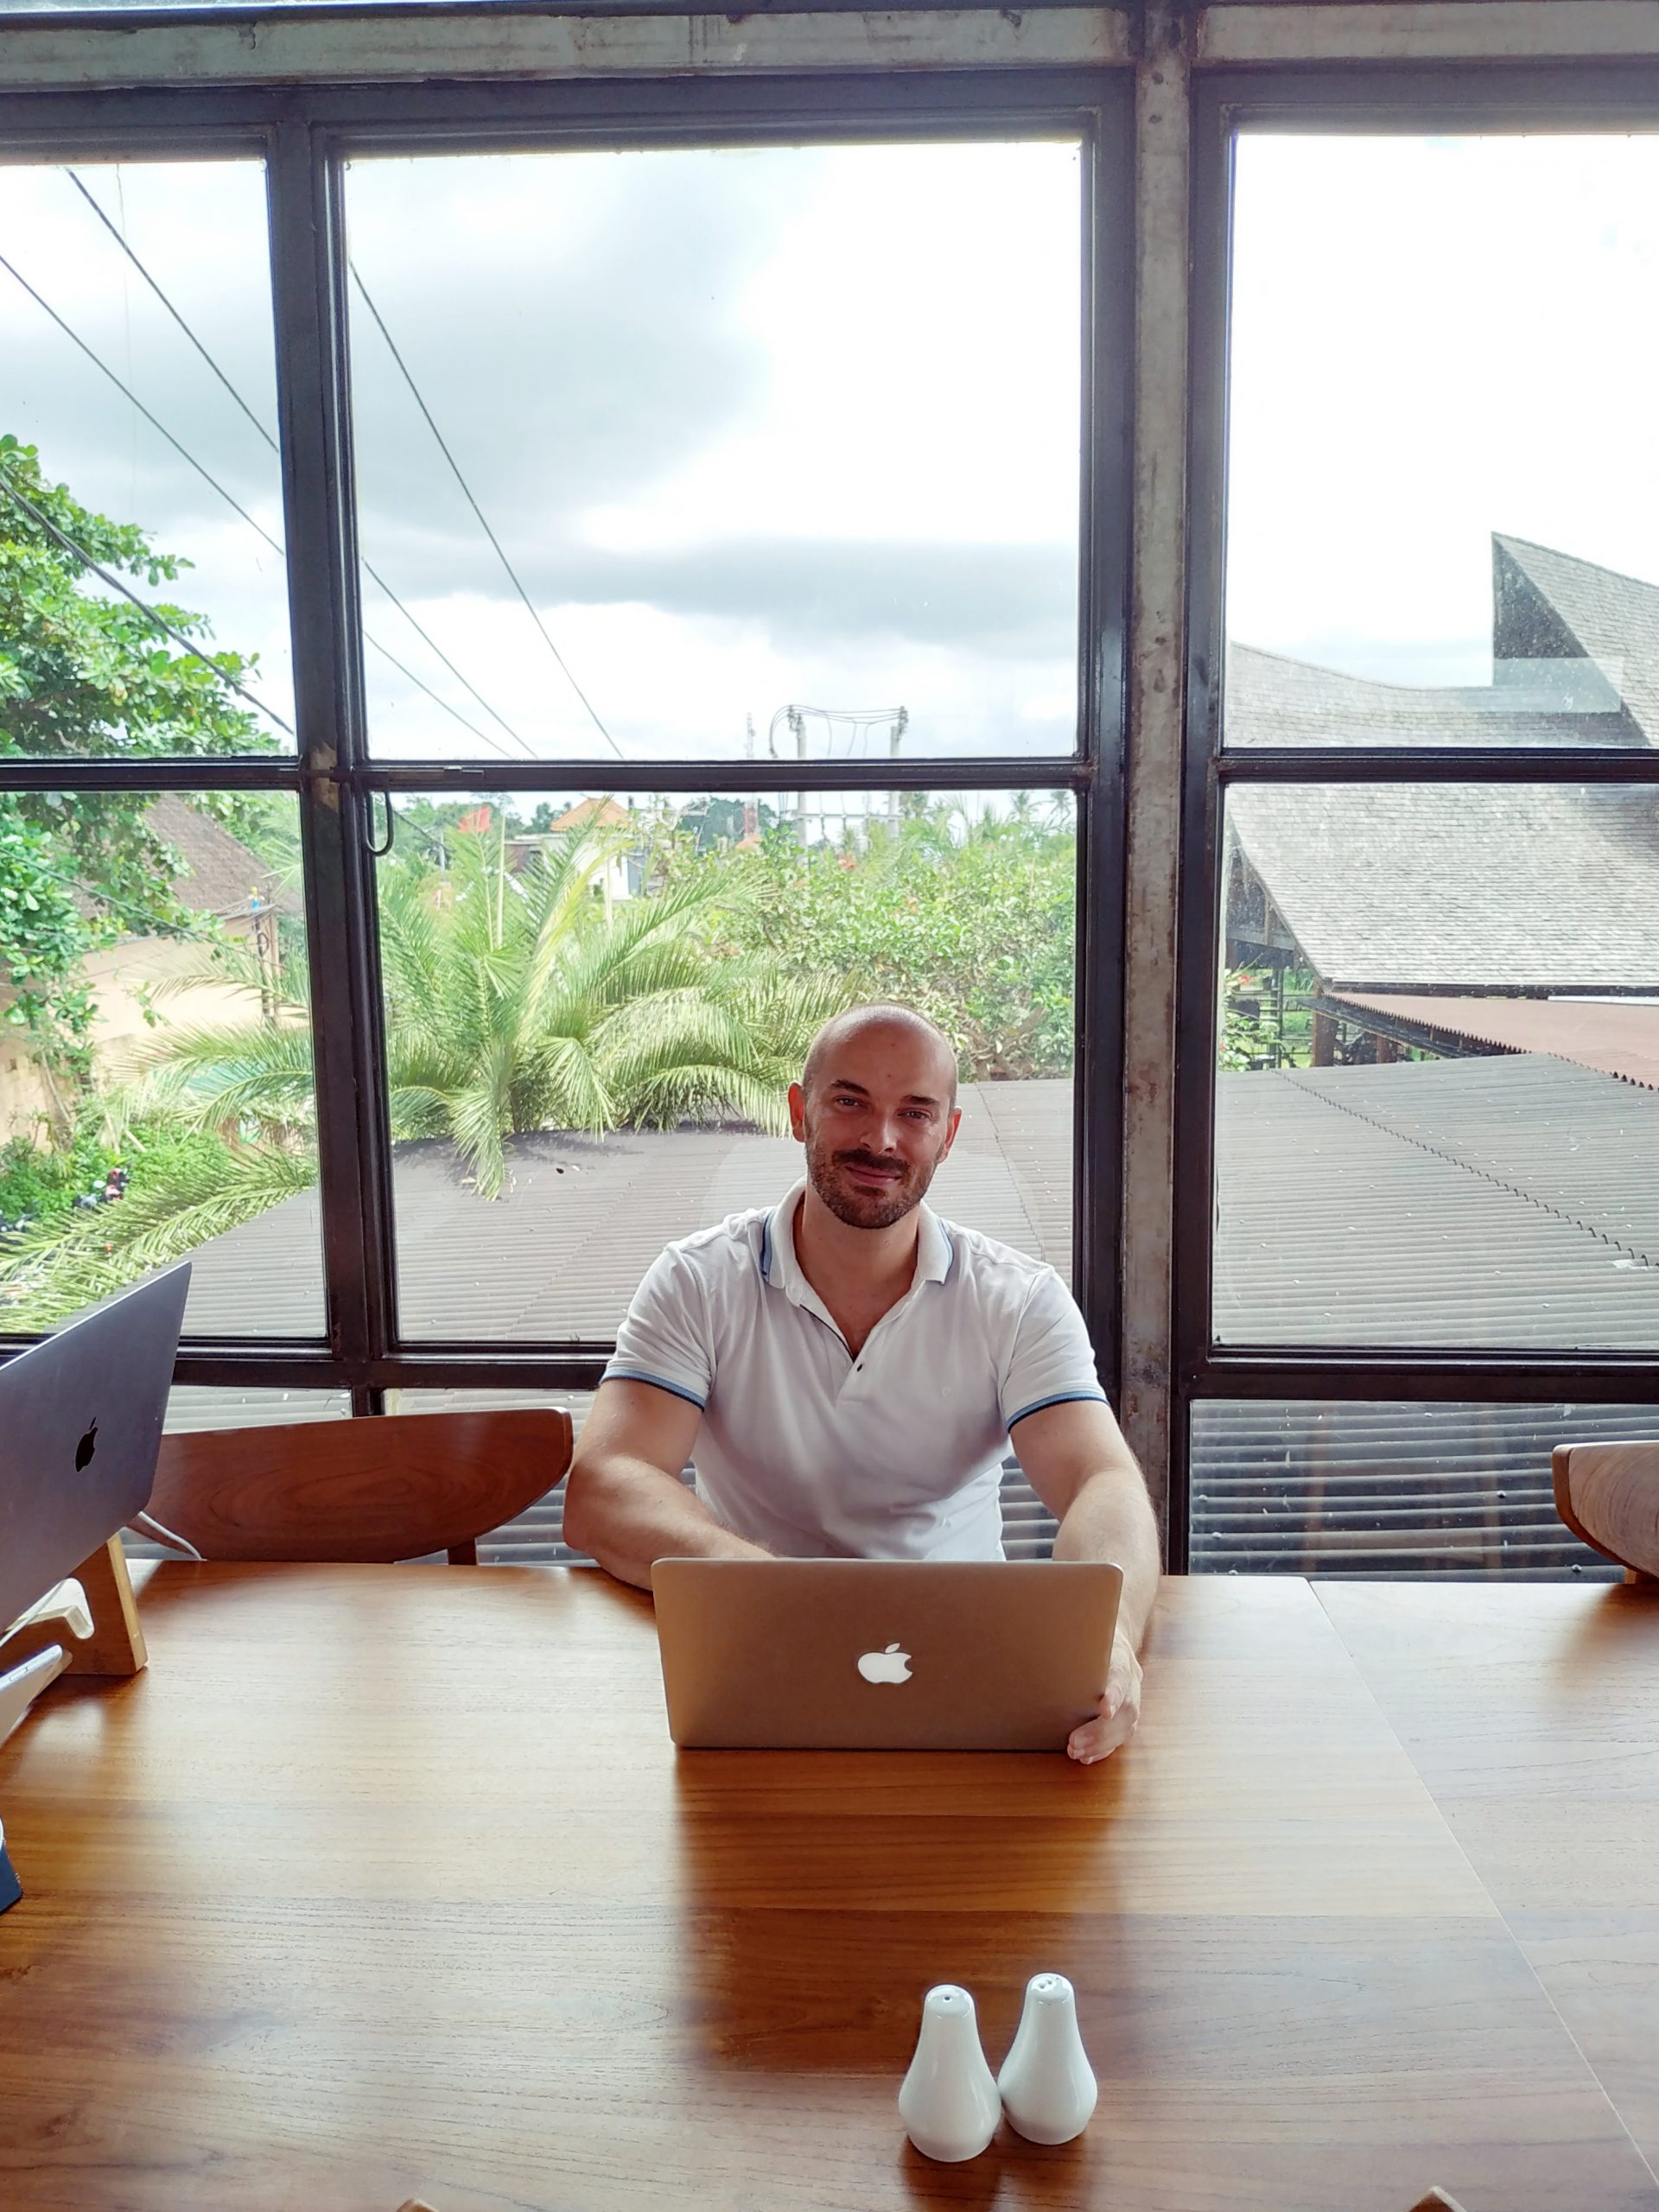 co-working space in ubud, The Best Co-working Space in Ubud, Bali, Micropreneur Life